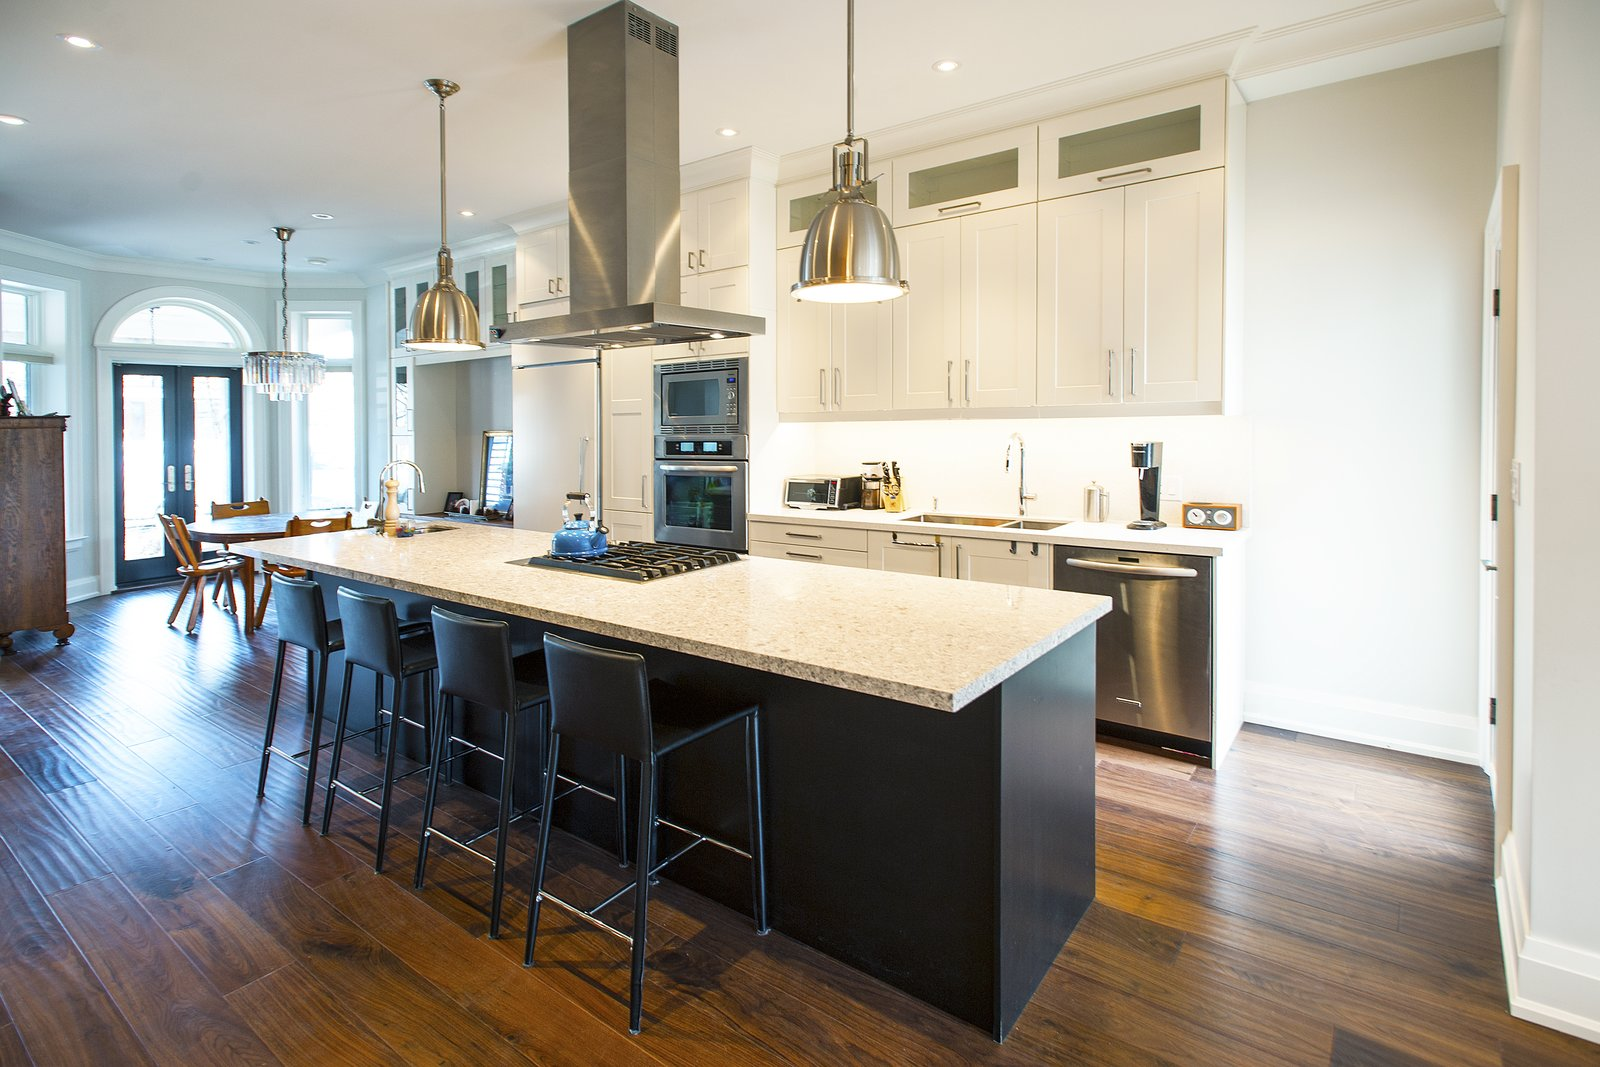 Bickford Park - Kitchen Tagged: Kitchen, Dark Hardwood, Stone, White, Ceiling, Pendant, Range Hood, Range, Microwave, Wall Oven, and Cooktops.  Best Kitchen Wall Oven Dark Hardwood Photos from Bickford Park